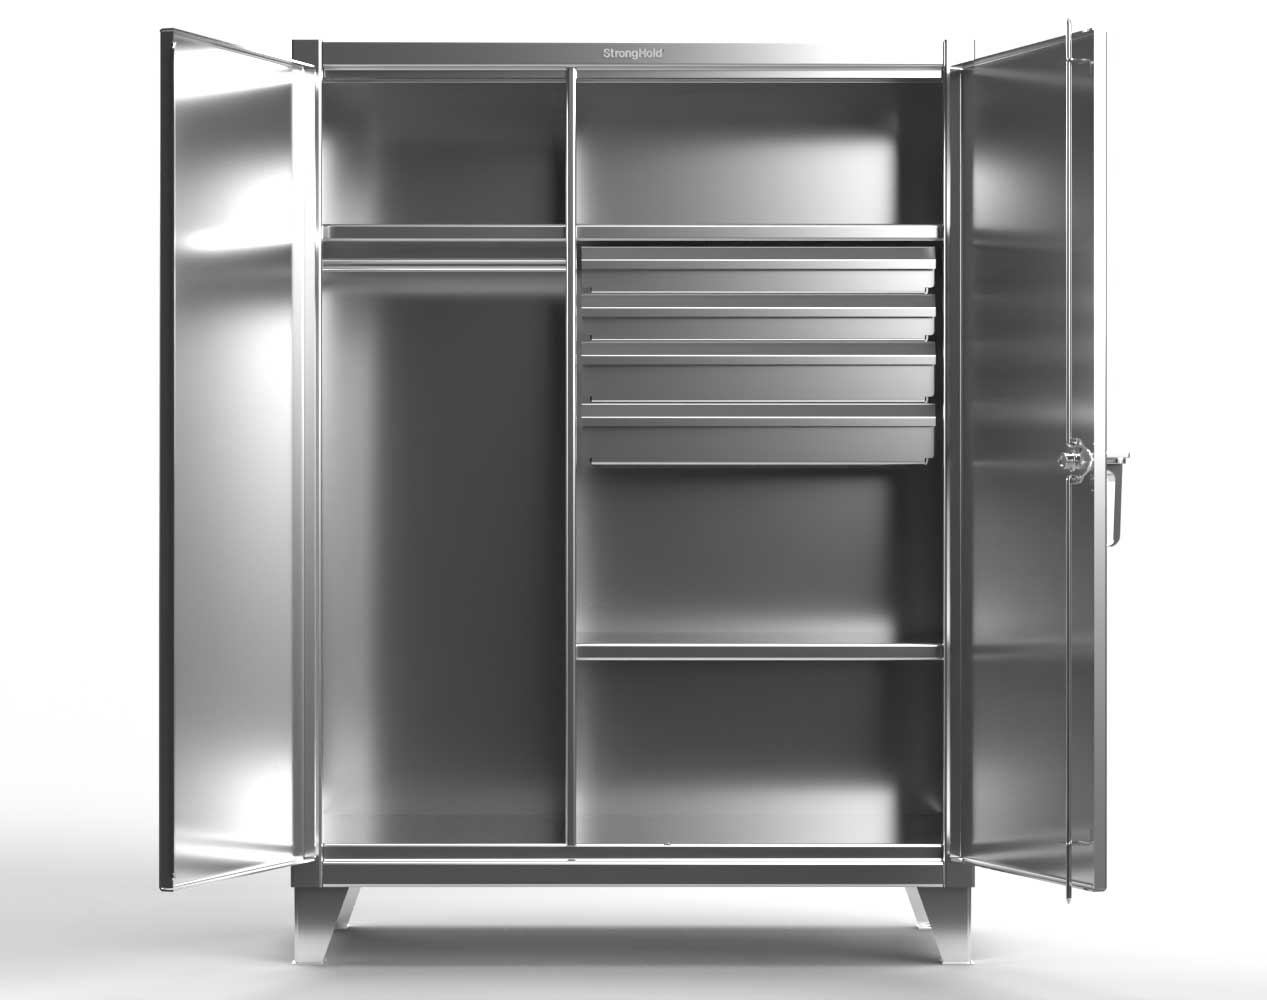 Extreme Duty 12 GA Stainless Steel Uniform Cabinet with 4 Drawers, 3 Shelves – 48 In. W x 24 In. D x 66 In. H